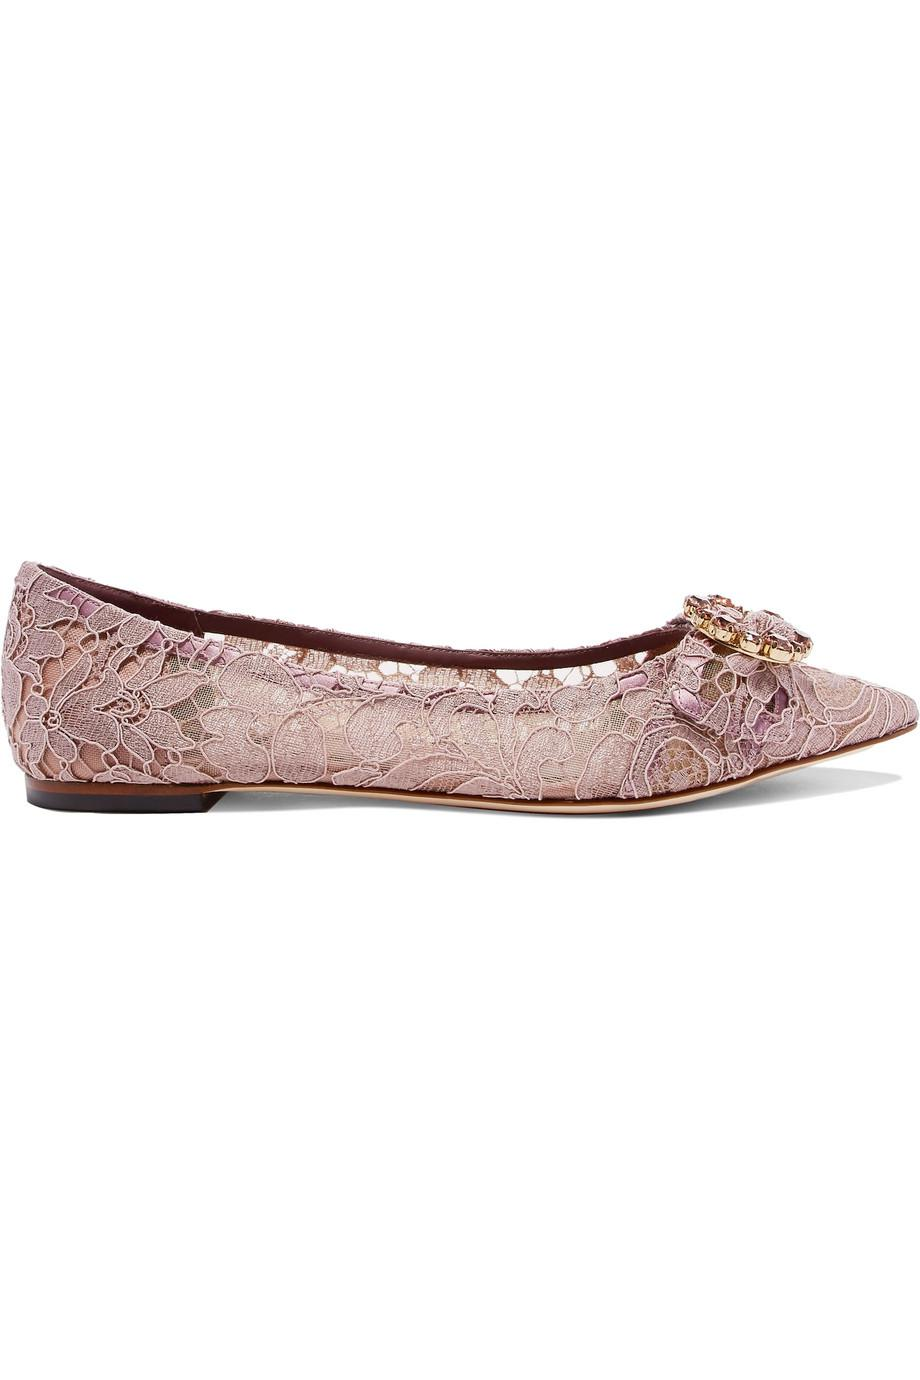 Crystal-embellished Corded Lace Point-toe Flats - Lilac Dolce & Gabbana 2oxd5